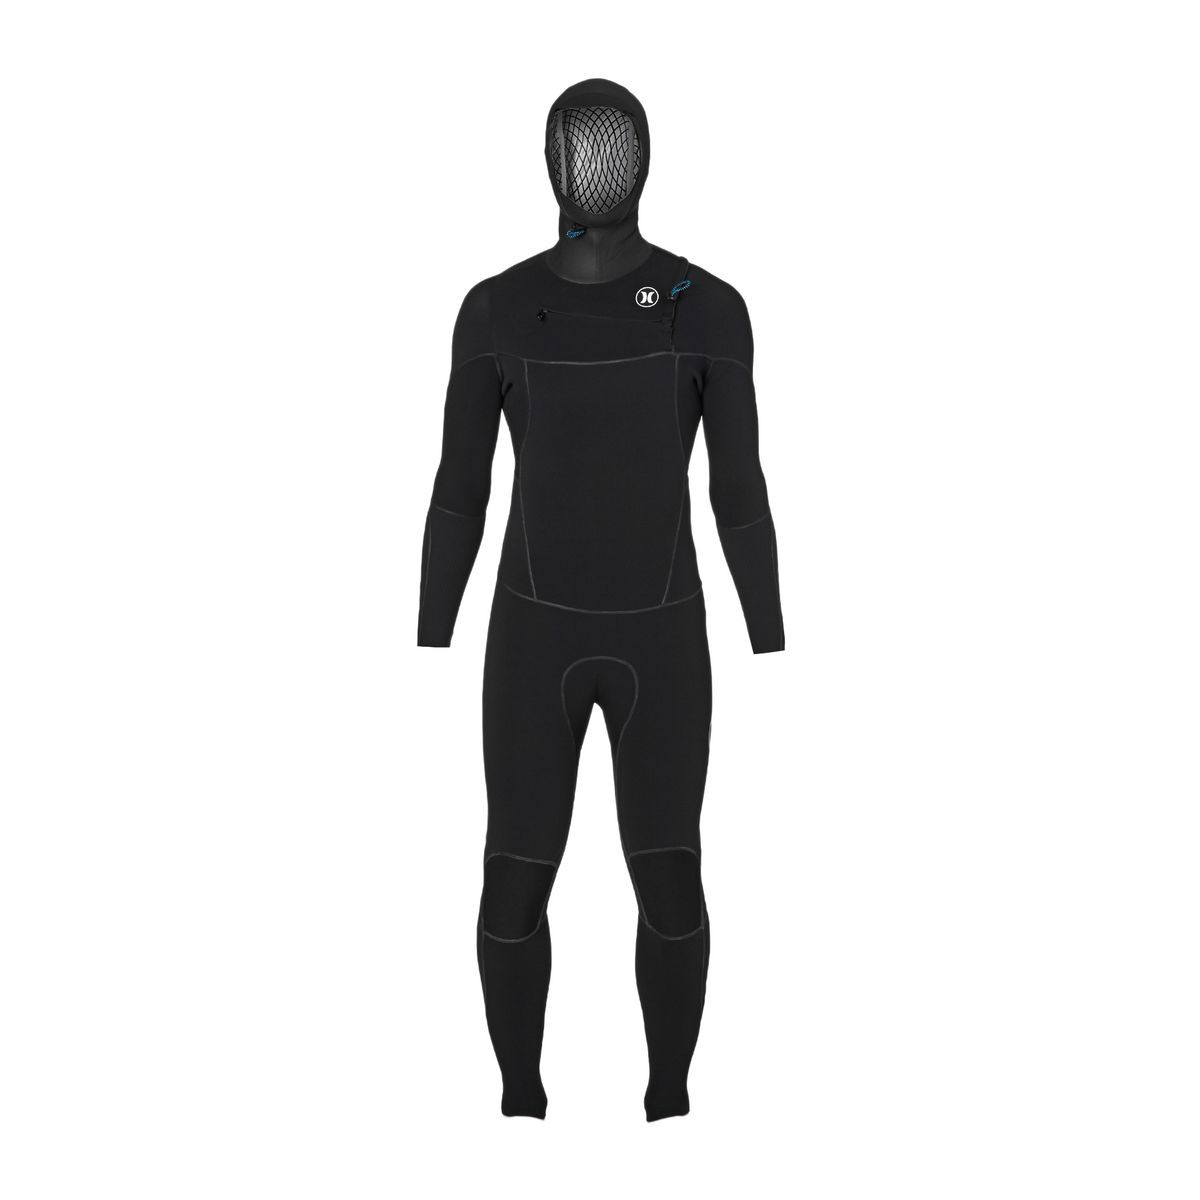 Hurley Phantom 4/3mm 2017 Chest Zip Hooded Wetsuit - Black